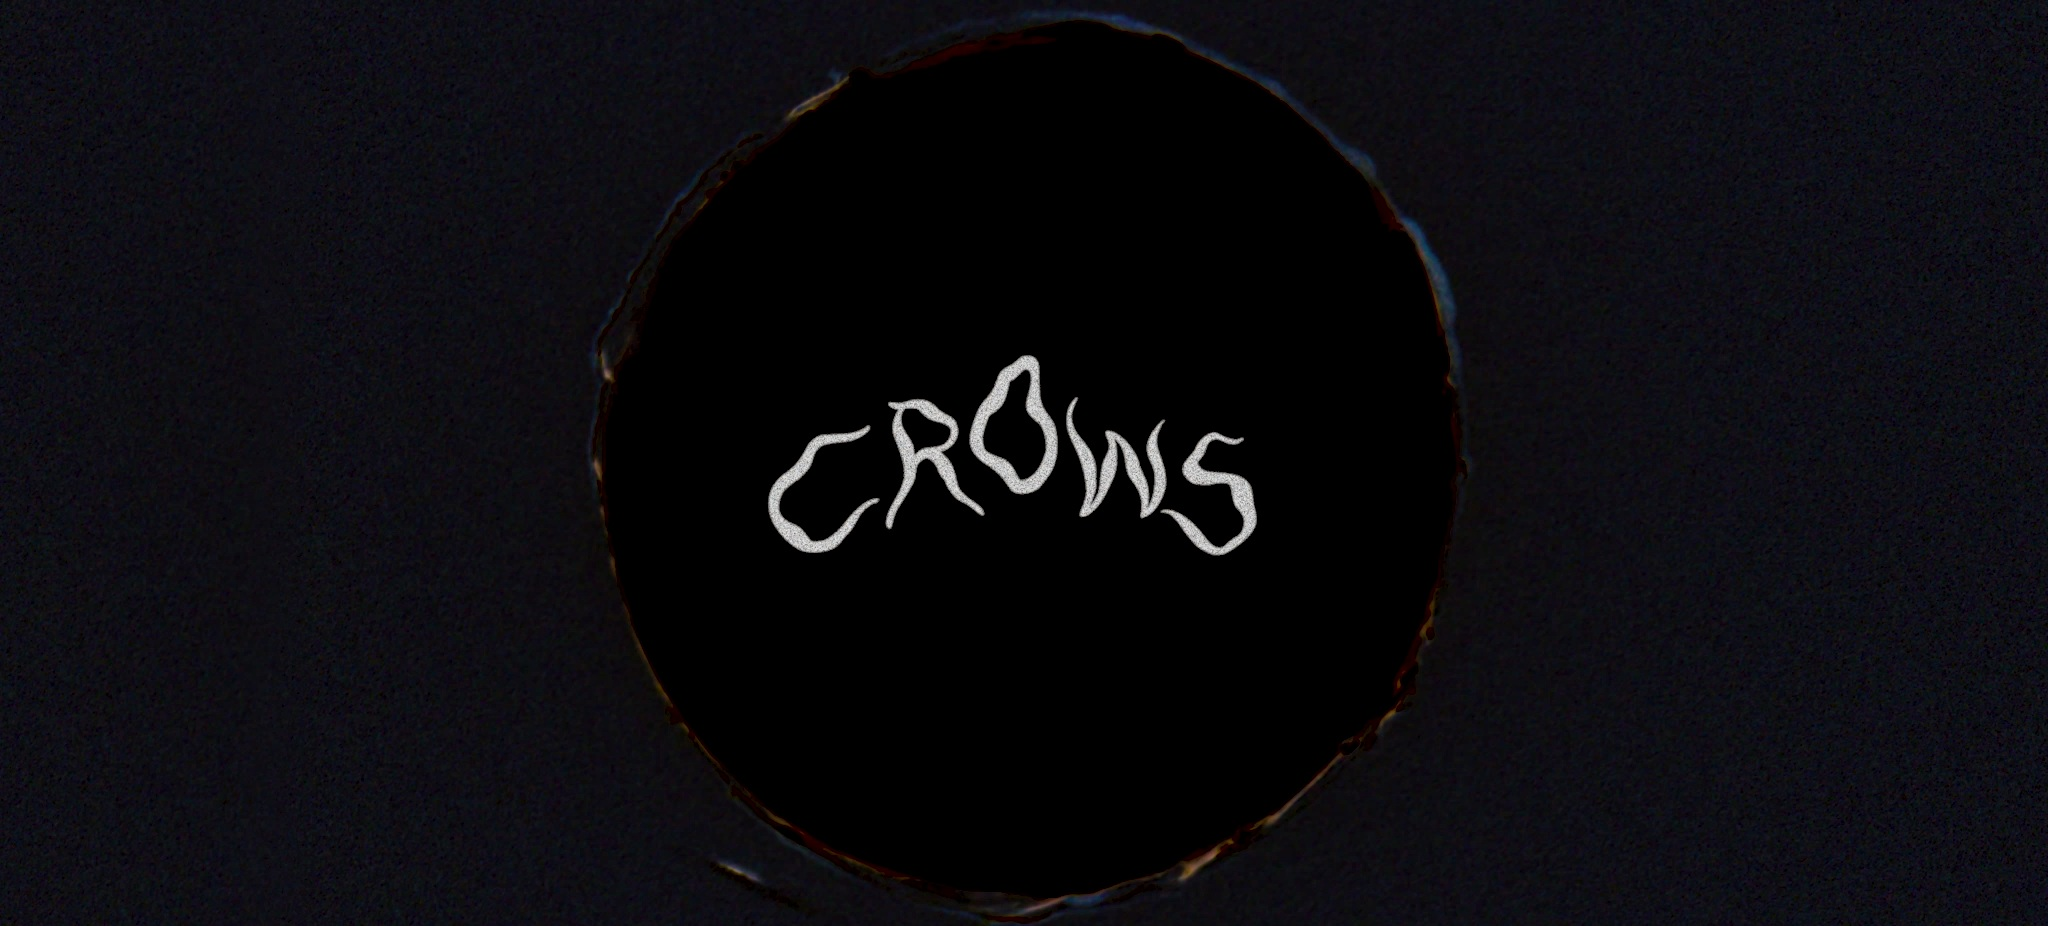 CROWS1.png